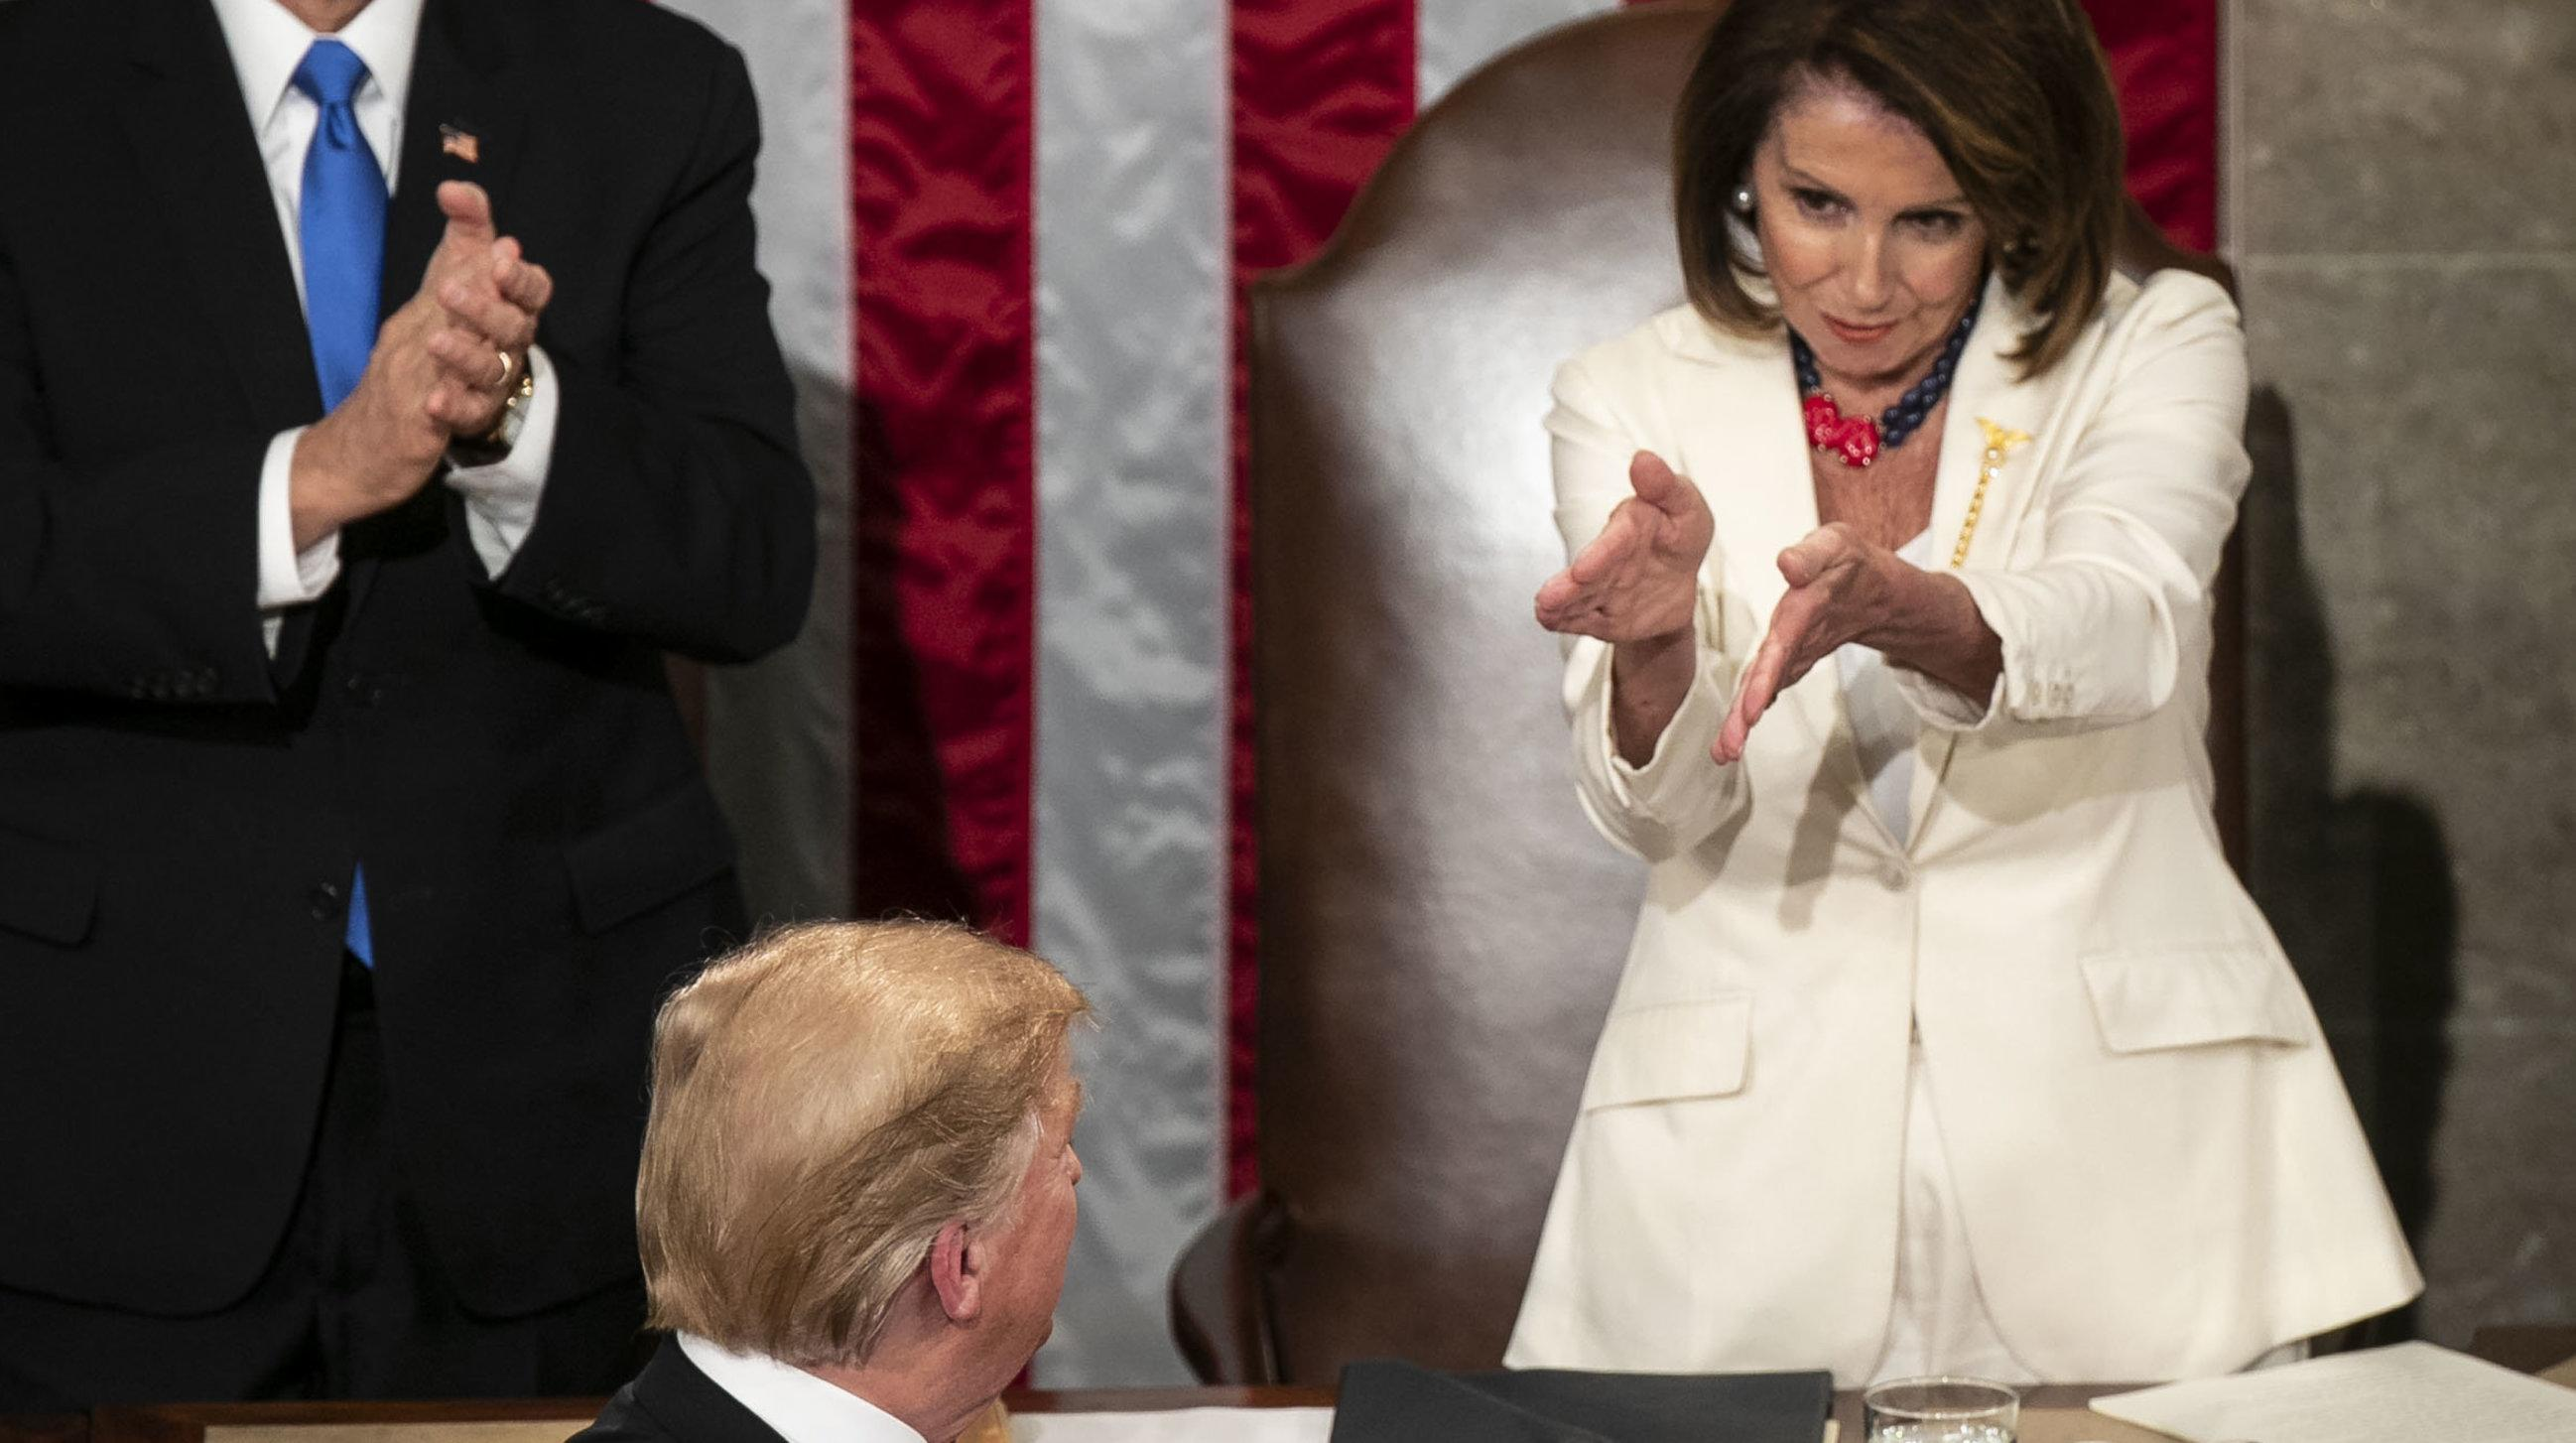 Nancy Pelosi's Daughter Jokes That Infamous Clap At Trump Took Her Back To Teen Years